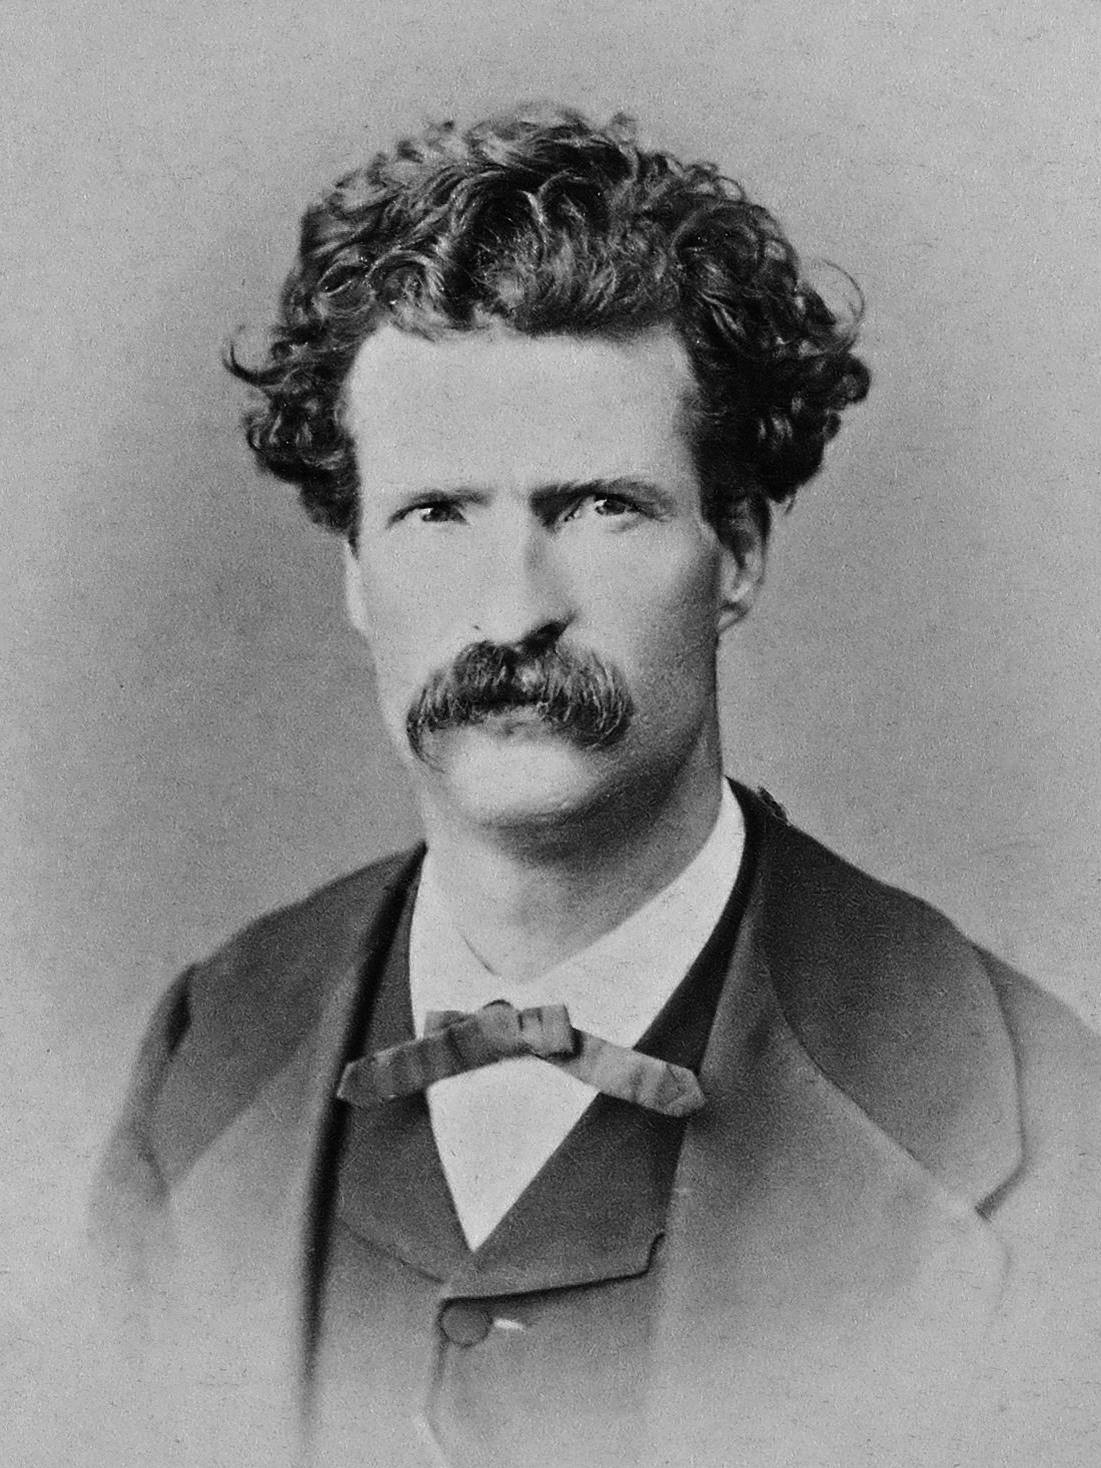 Mark Twain in 1867. Abdullah frères [Public domain], via Wikimedia Commons